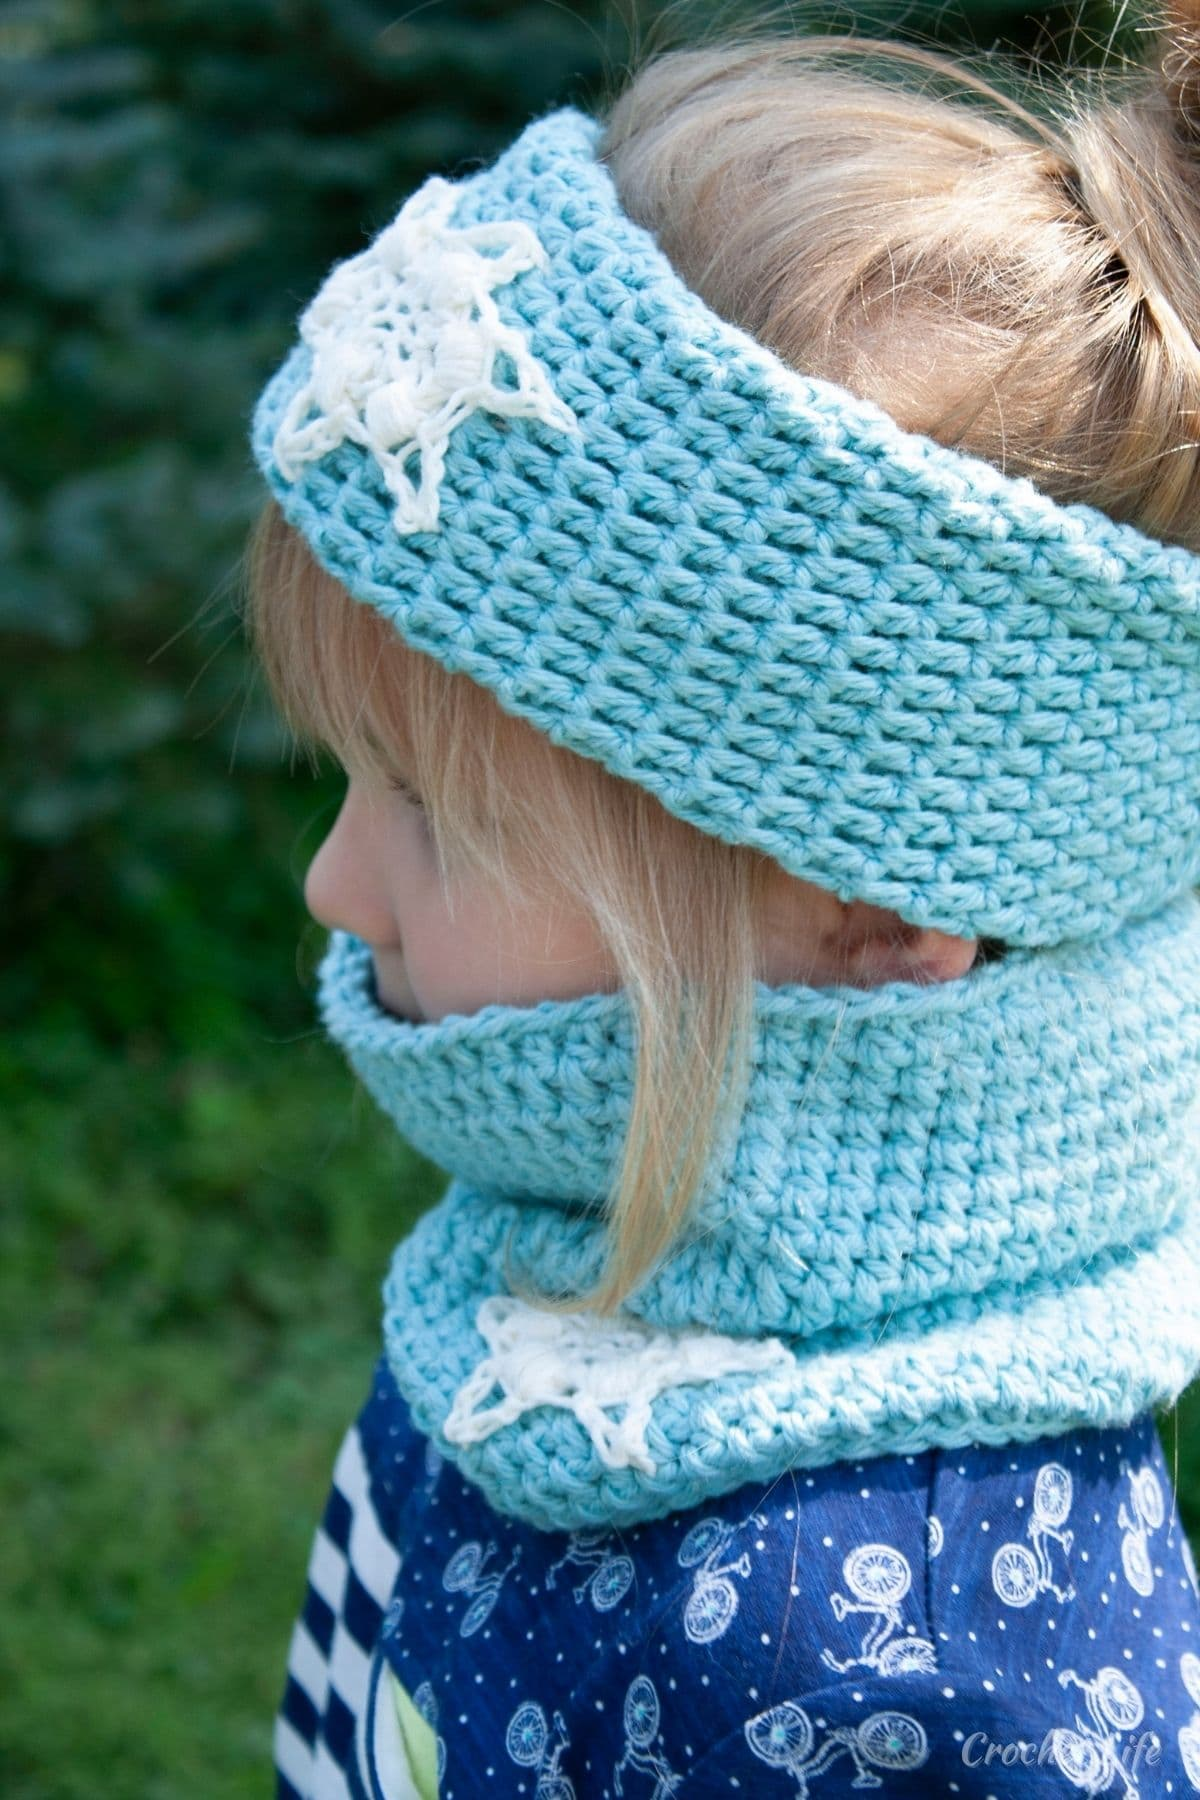 Small blonde girl in blue shirt looking away wearing blue headband and cowl